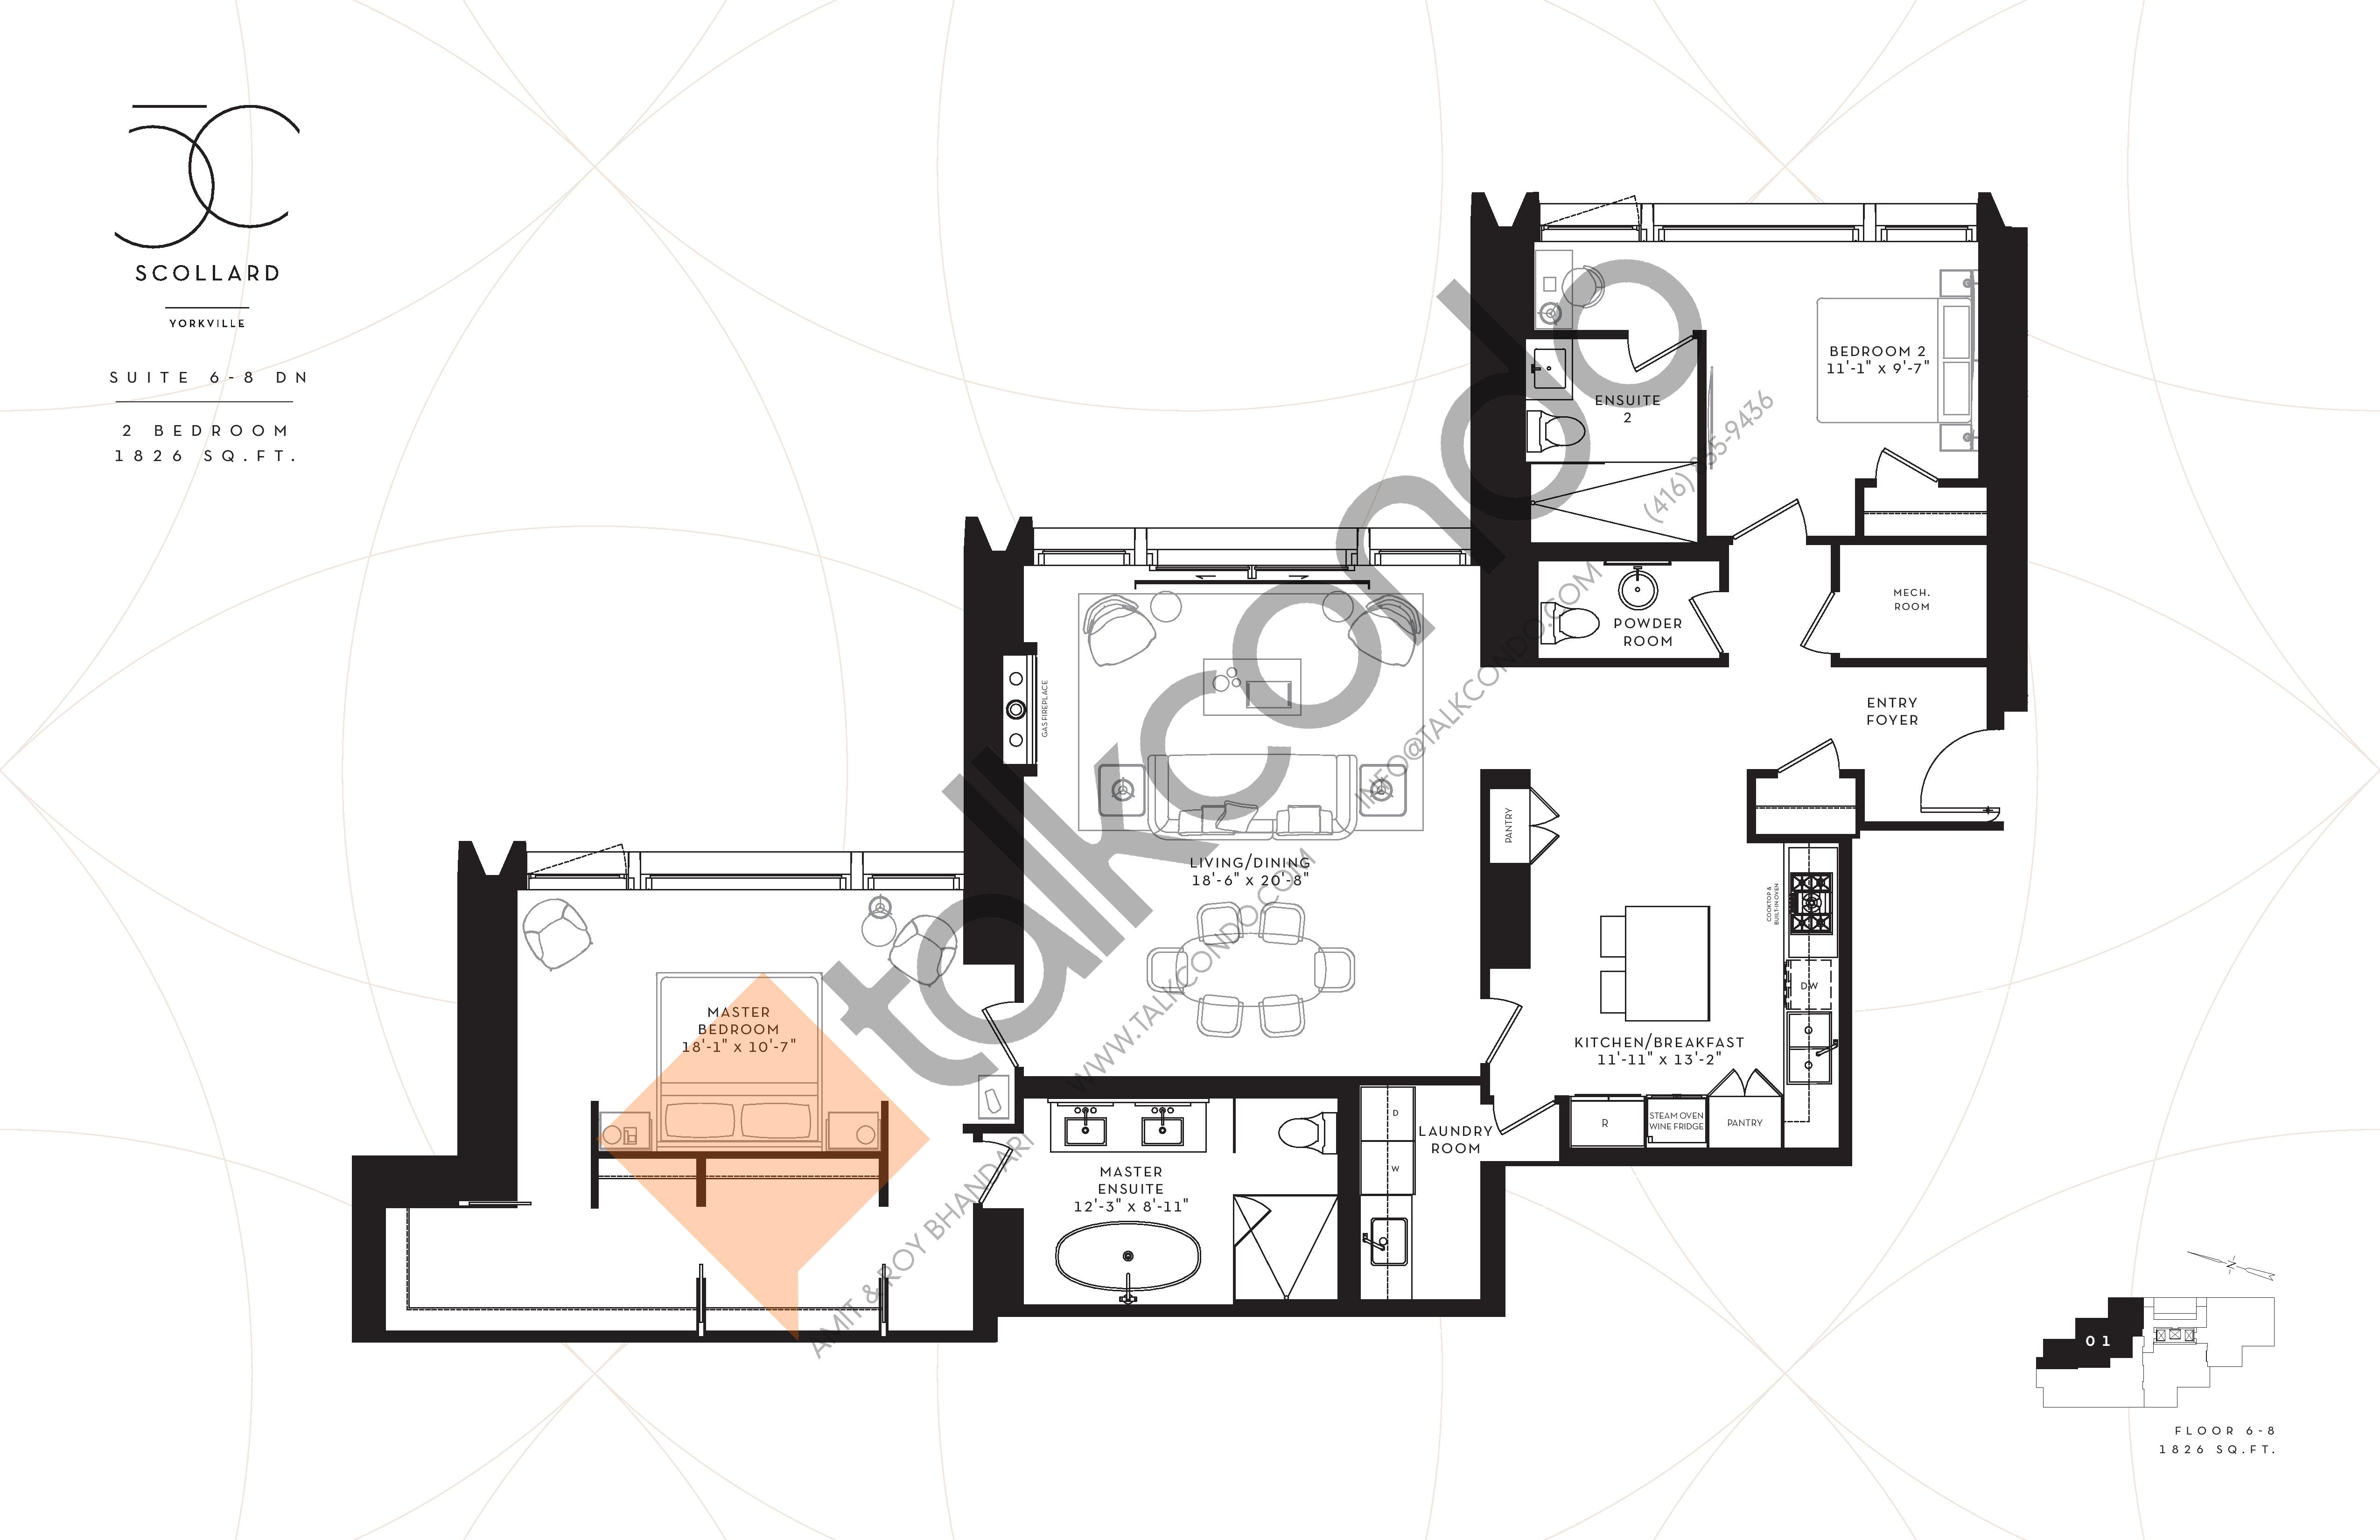 Suite 6-8 DN Floor Plan at Fifty Scollard Condos - 1826 sq.ft